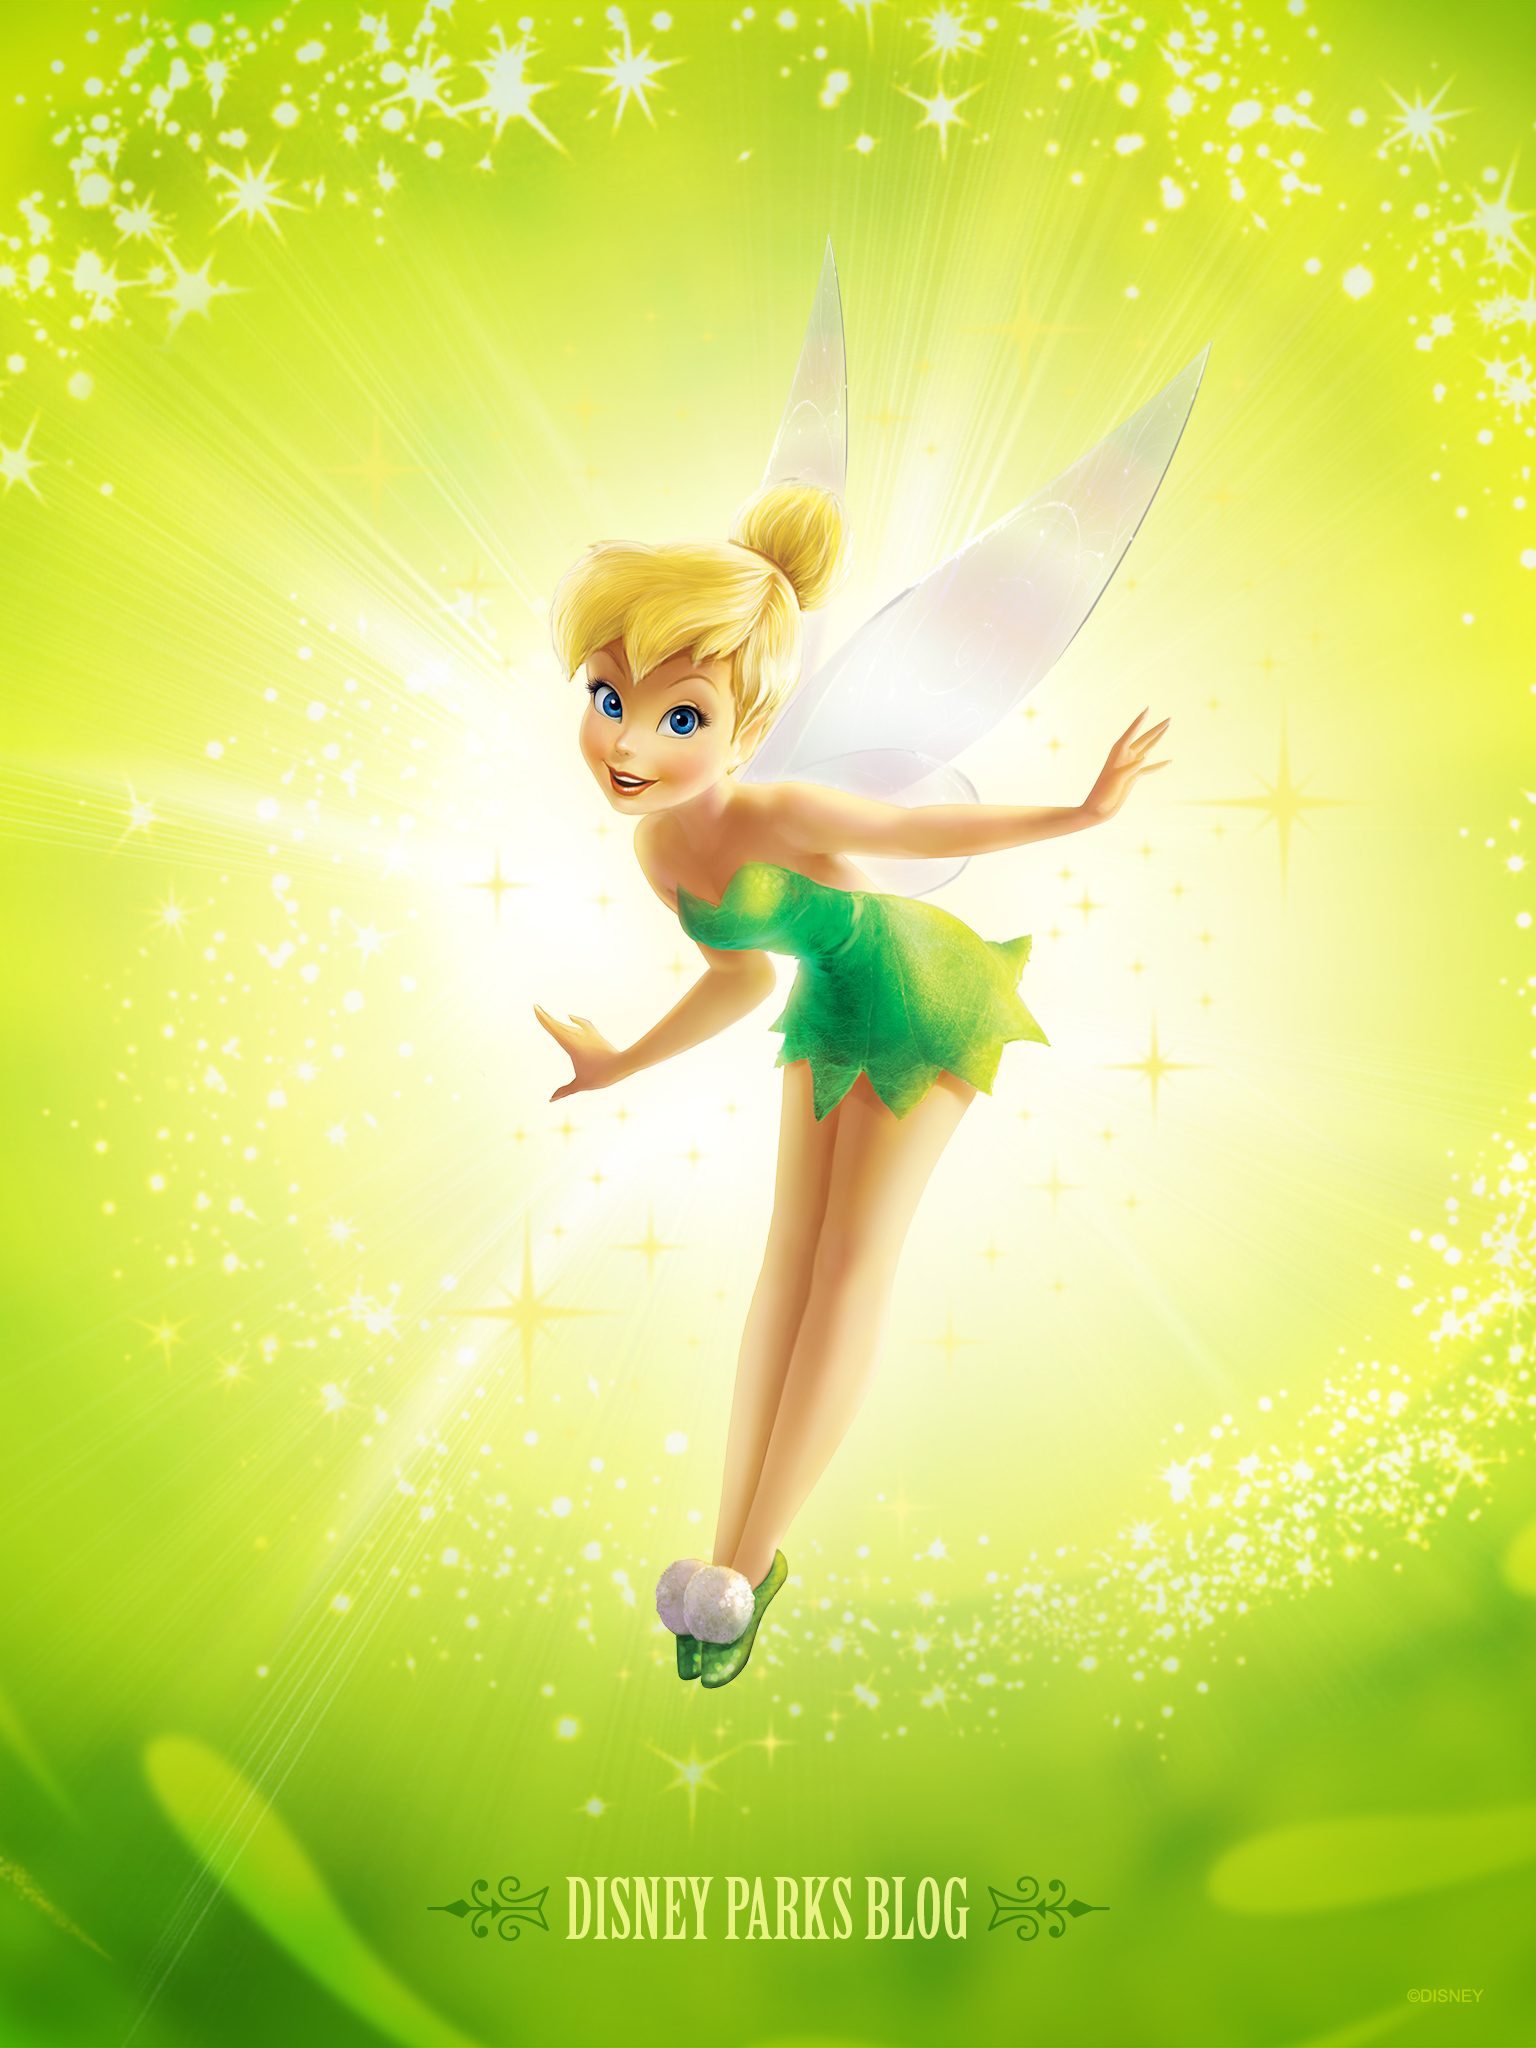 Tinkerbell Wallpaper For Iphone 6 Iphone Android Wallpapers 171 Wallpaper Types 171 Disney Parks